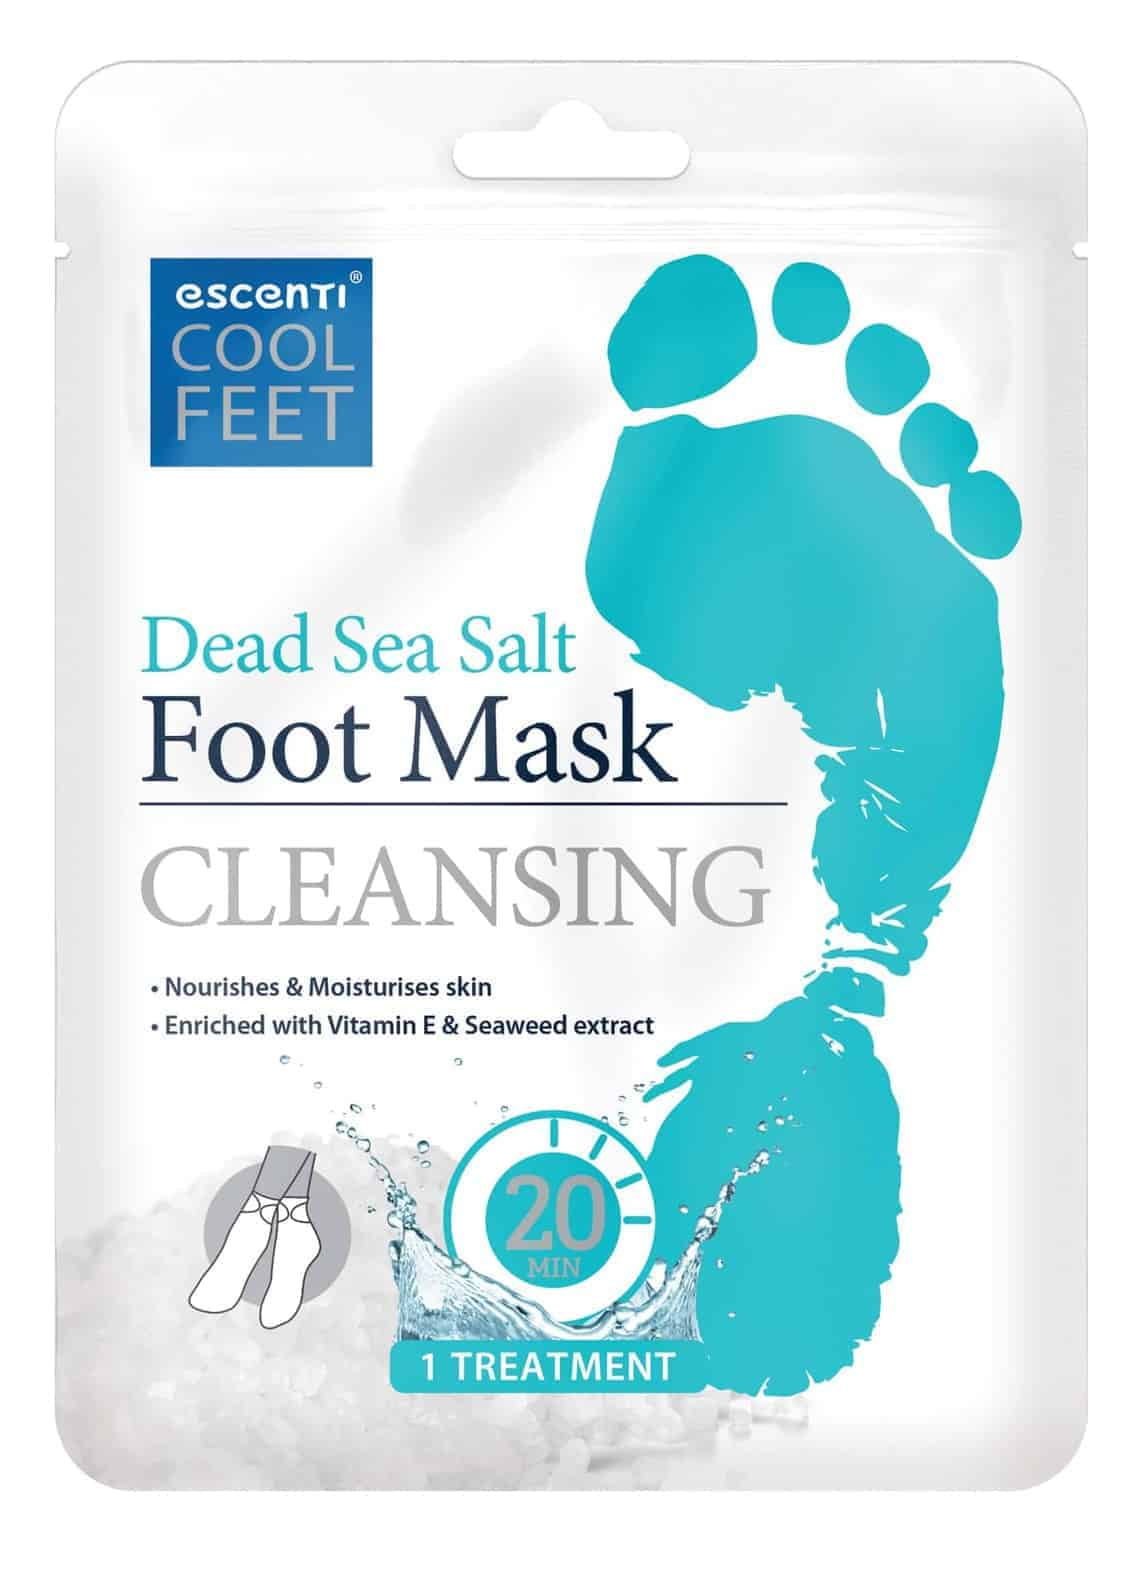 Escenti Cool Feet Dead Sea Salt Foot Mask